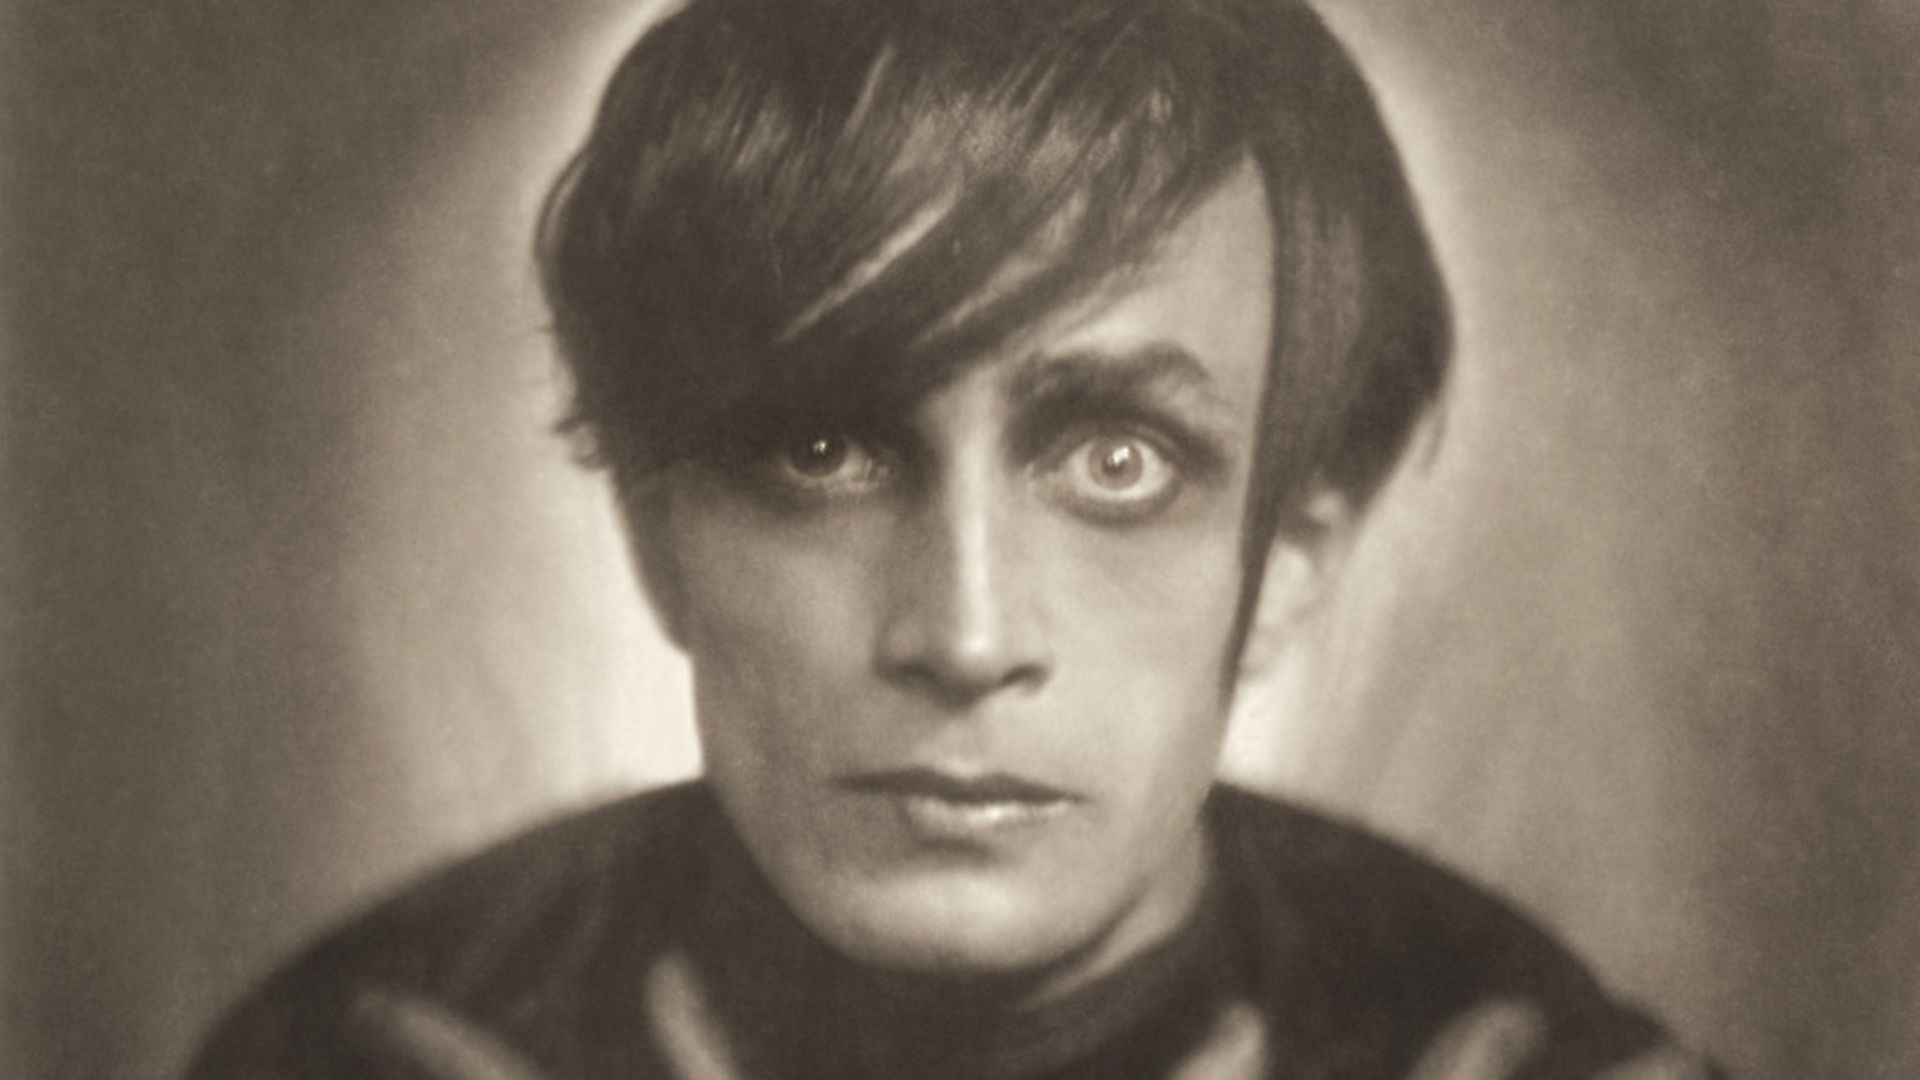 """UNSPECIFIED - CIRCA 1921:  Conrad Veidt as """"Cesare"""" in the film """"The Cabinet of Dr. Caligari"""". Photograph. 1921  (Photo by Imagno/Getty Images) - Credit: Getty Images"""